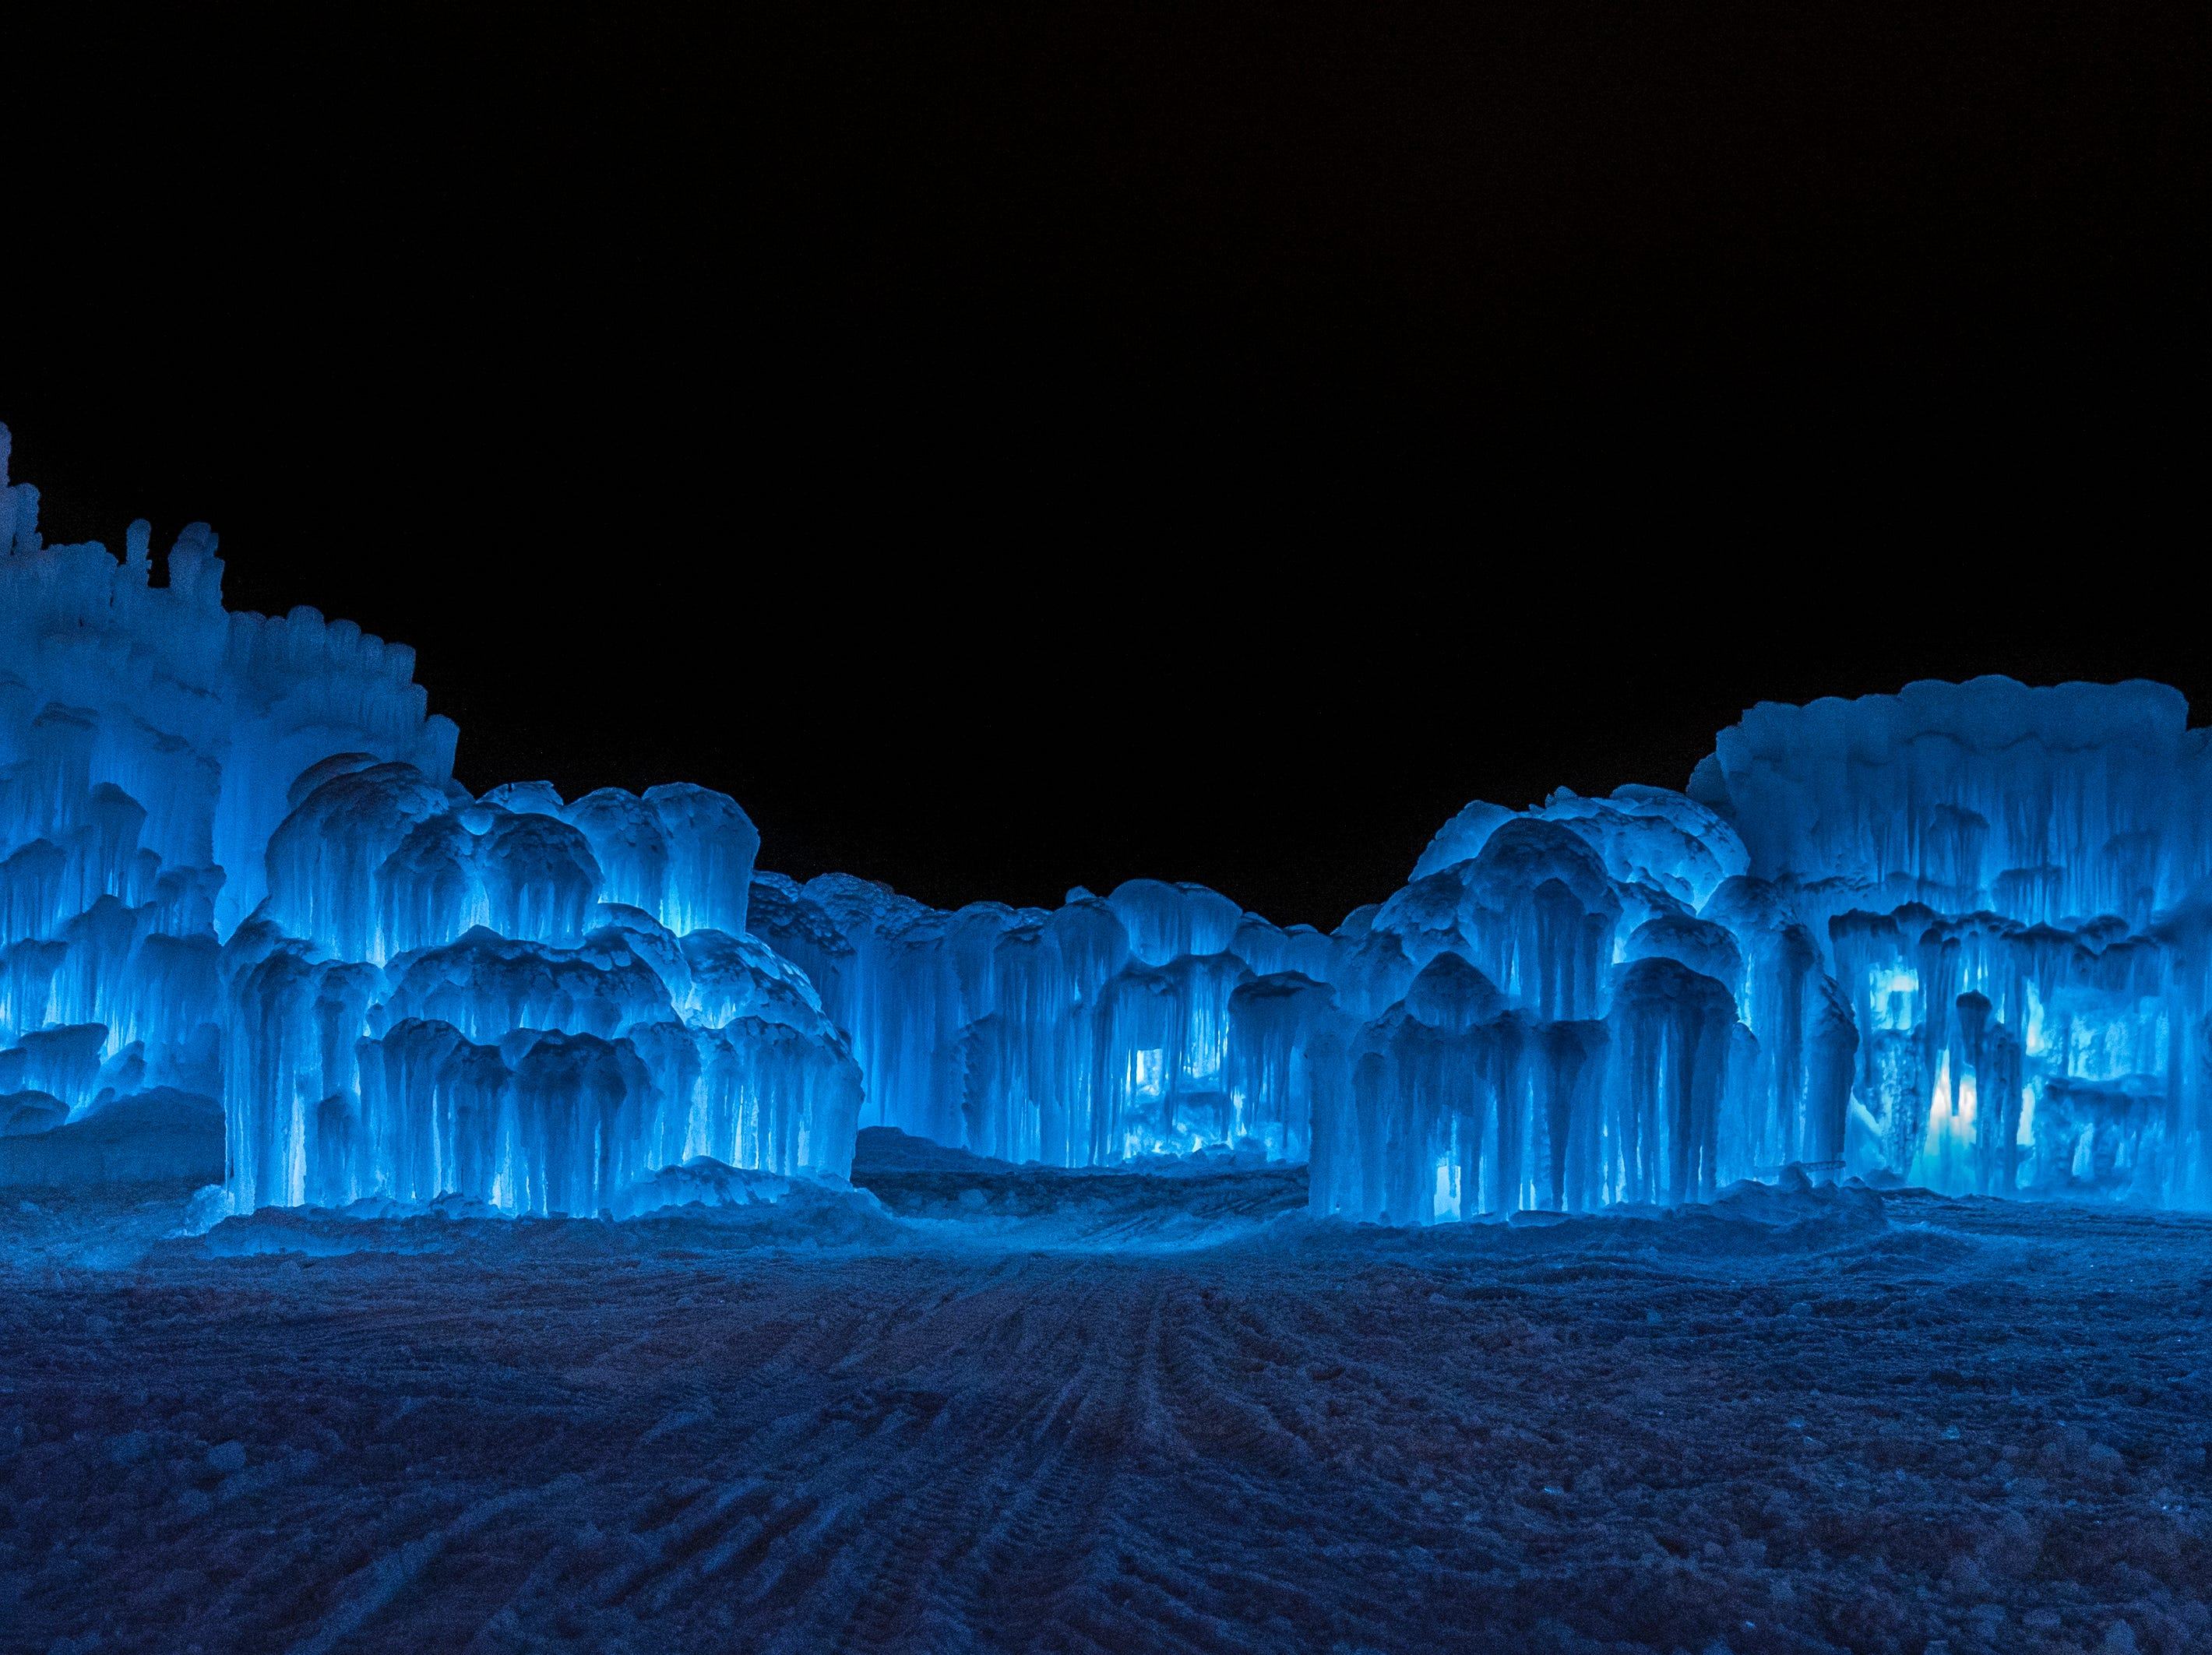 Ice Castles are created by a Utah-based entertainment company at locations around the U.S. and Canada, including in Lake Geneva the winter of 2018-2019.